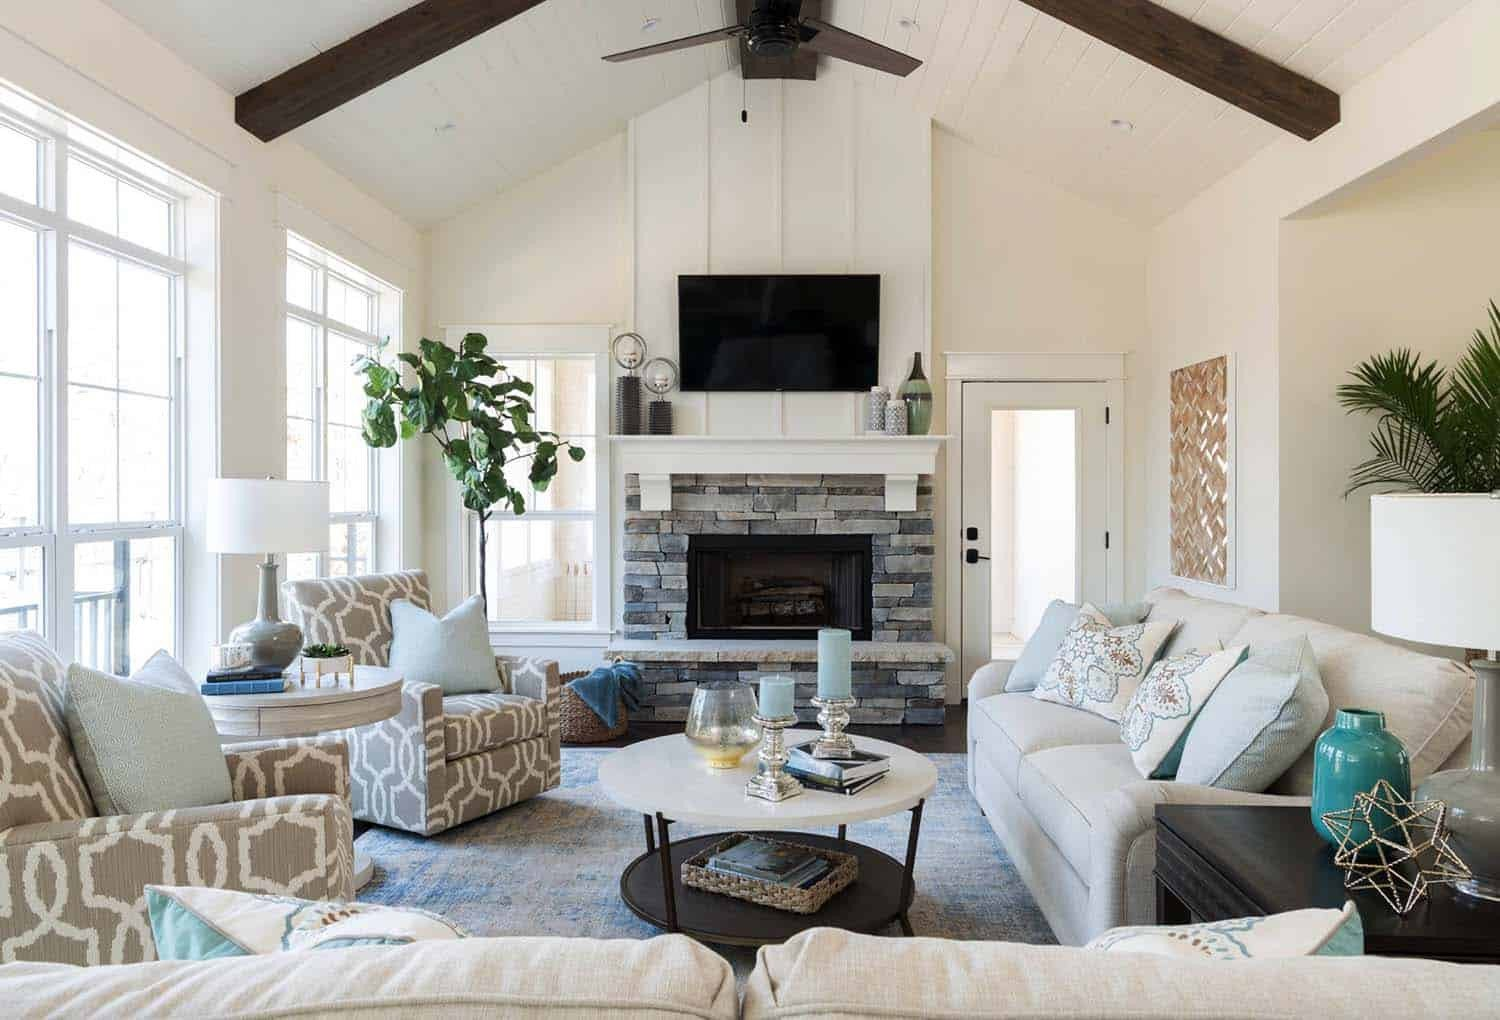 Lake House Furniture and Decor New Warm and Cozy Lake House In Texas Features A Modern Twist